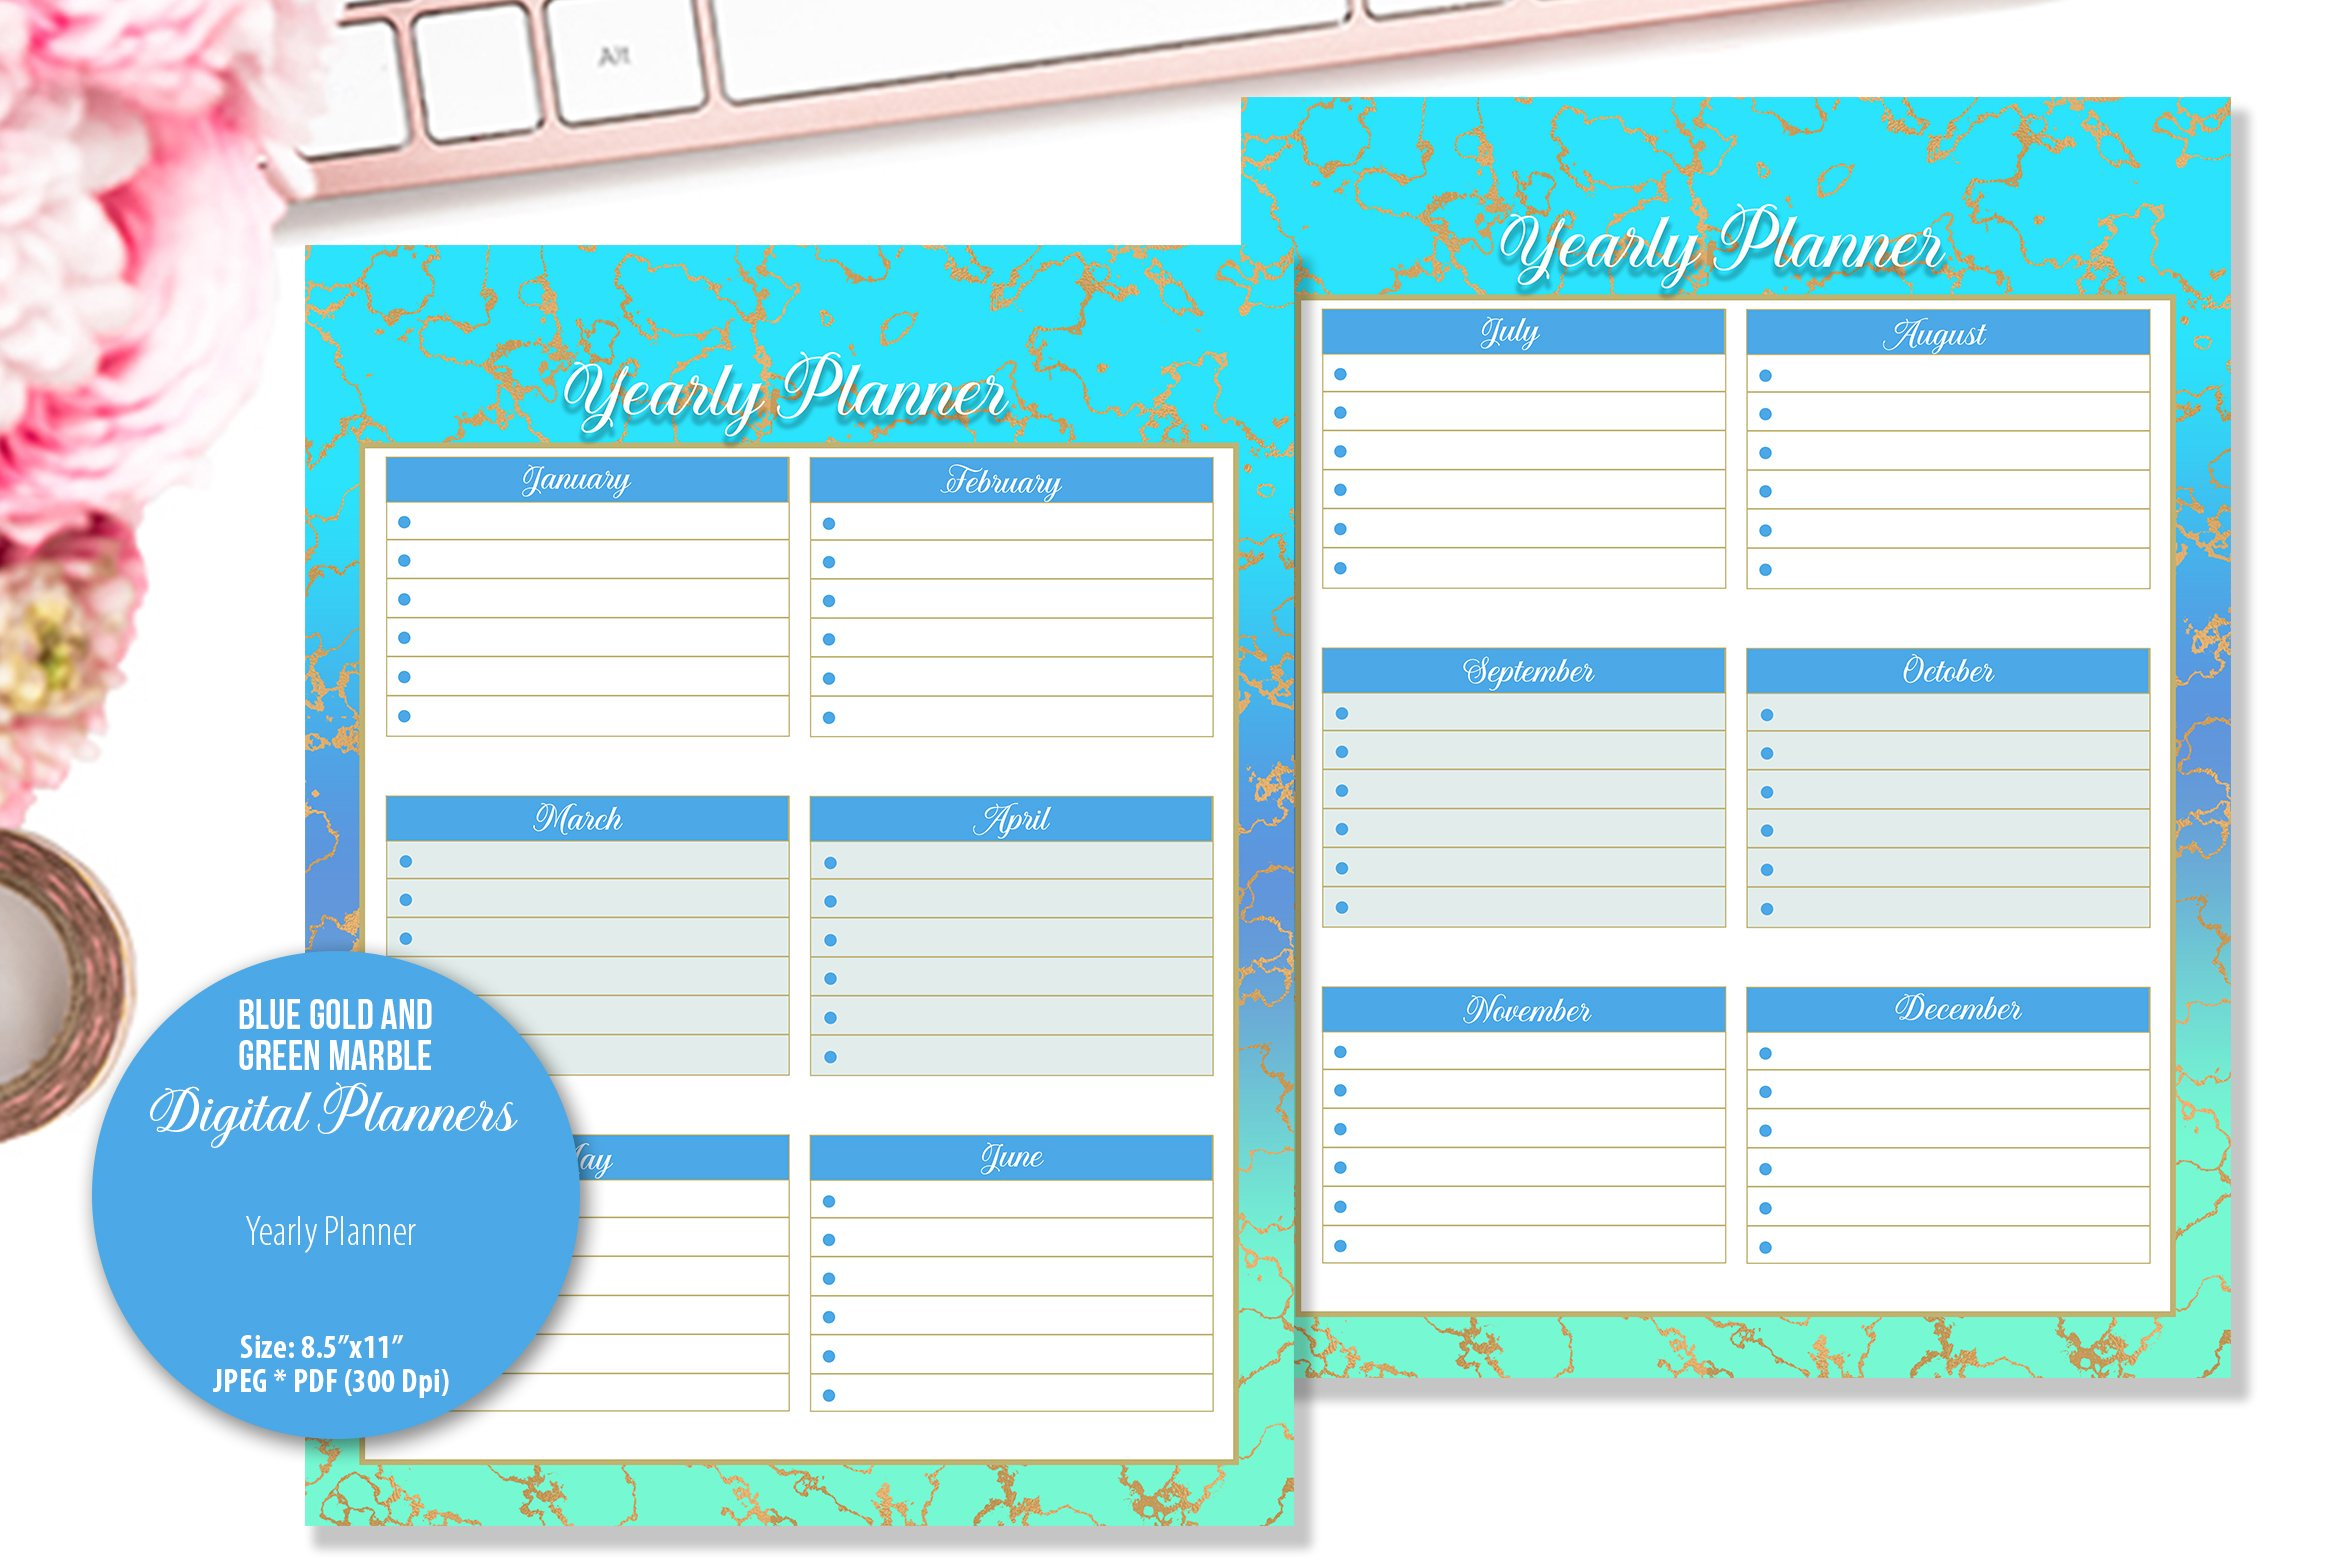 Blue Gold and Green Marble Digital Planner example image 5